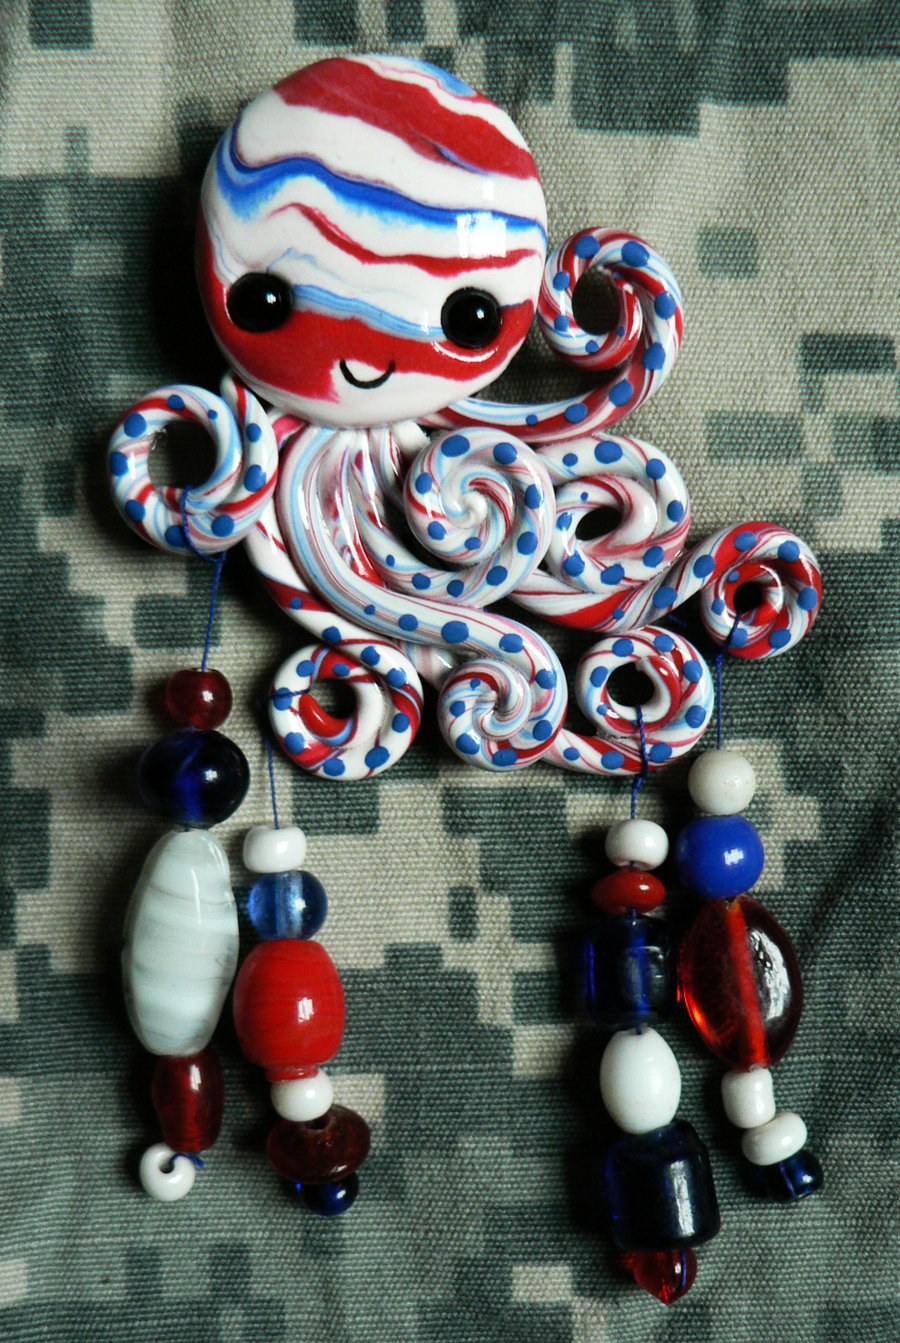 patriotic_octopus_magnet_by_blackmagdalena-d4jrsy5